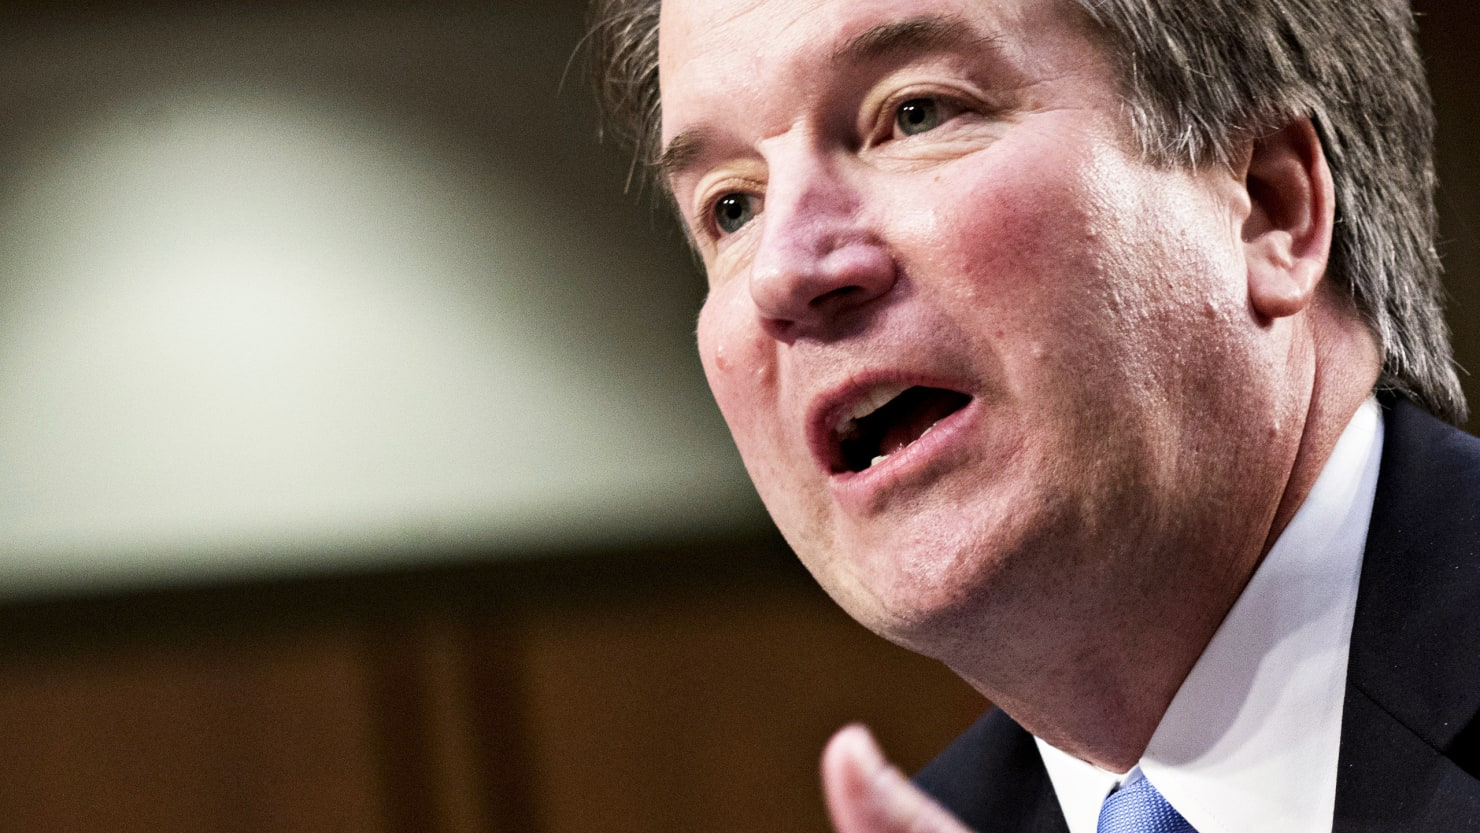 Brett Kavanaugh's Lying to Get on the Supreme Court, Like Clarence Thomas Before Him